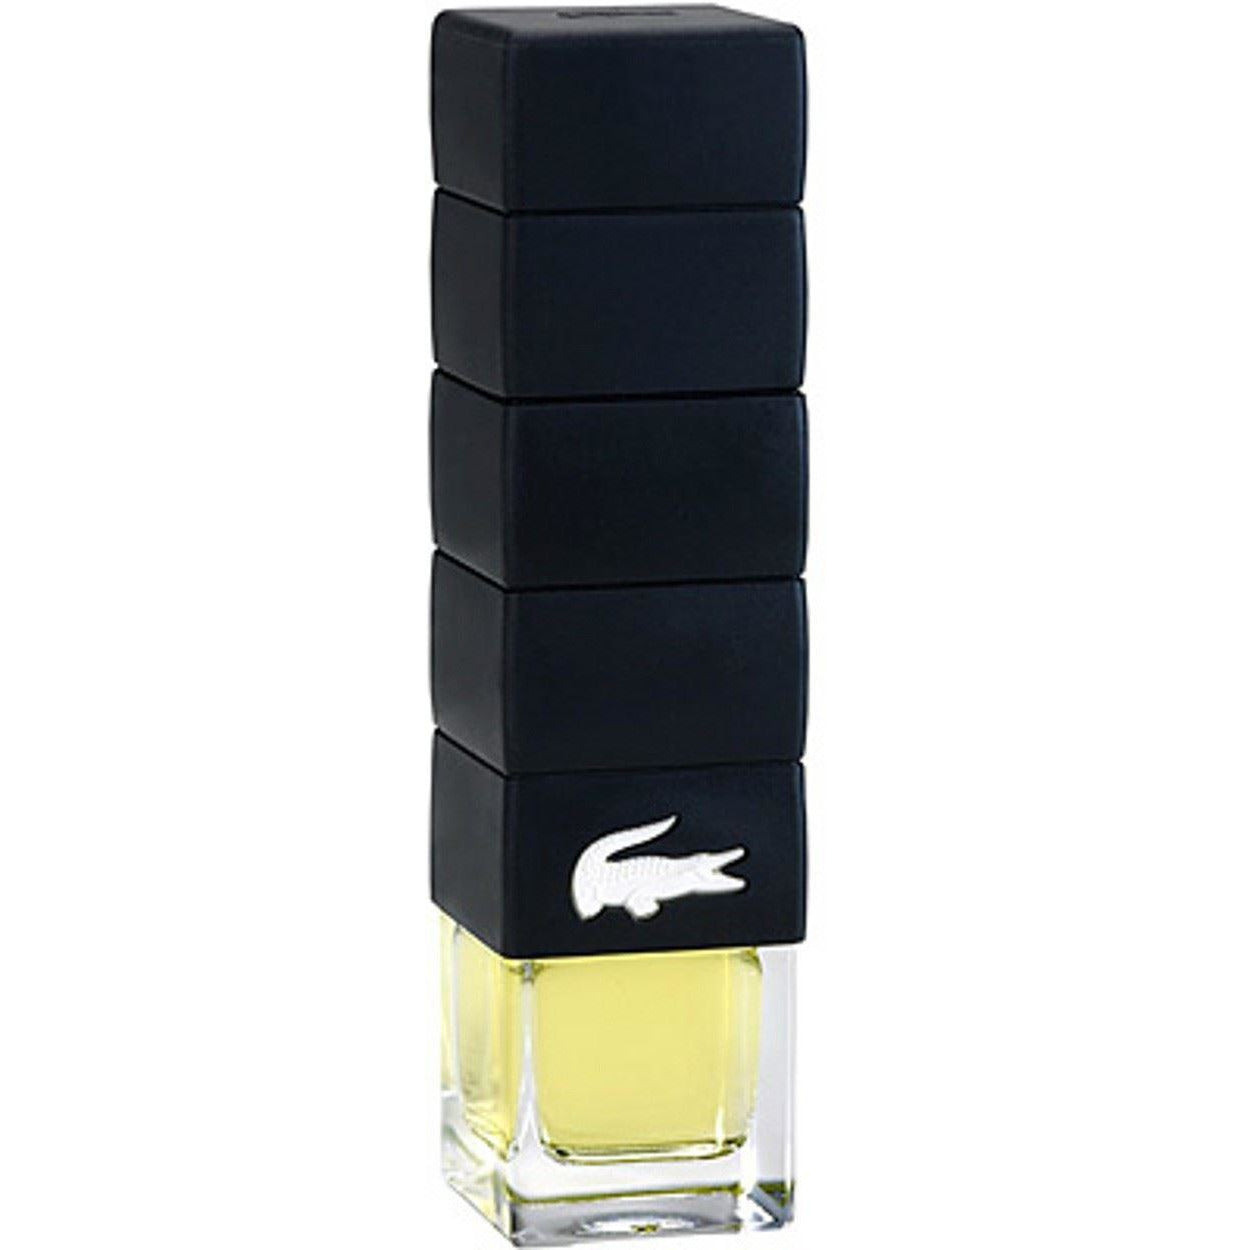 CHALLENGE by LACOSTE 3.0 oz edt Cologne New tester